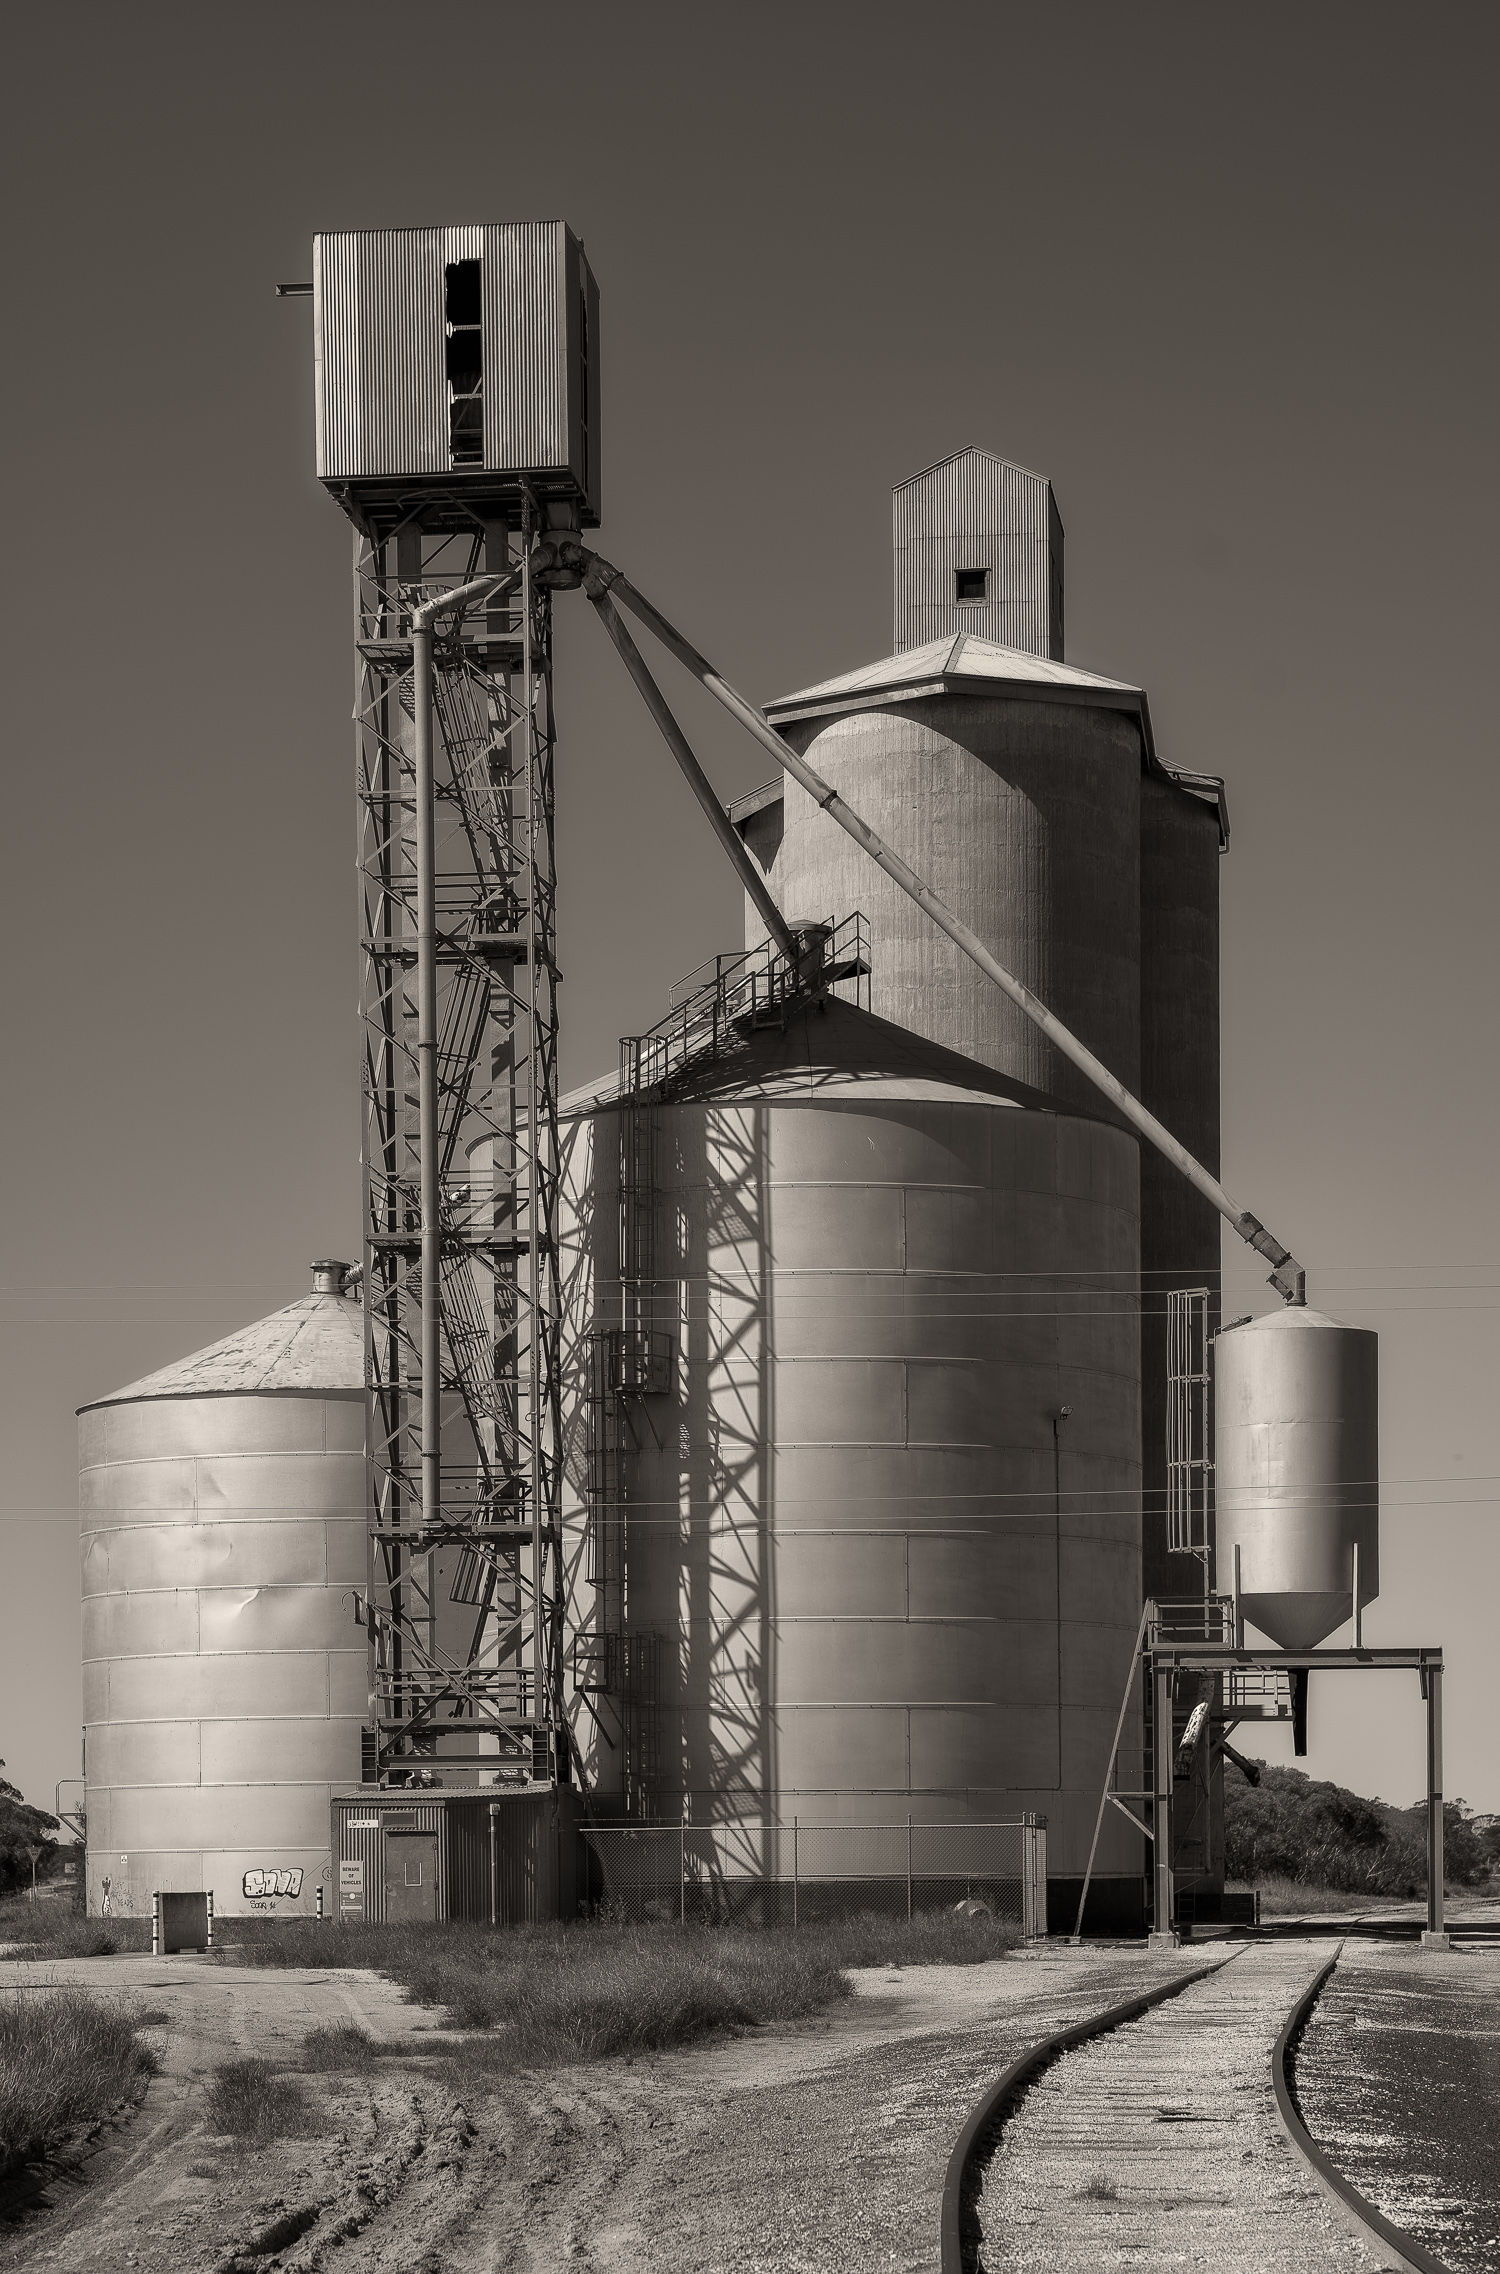 Silos  are the closest thing to a skyscraper you'll see in rural hamlets like  Cowangie  in the Sunraysia region of north west Victoria, Australia.